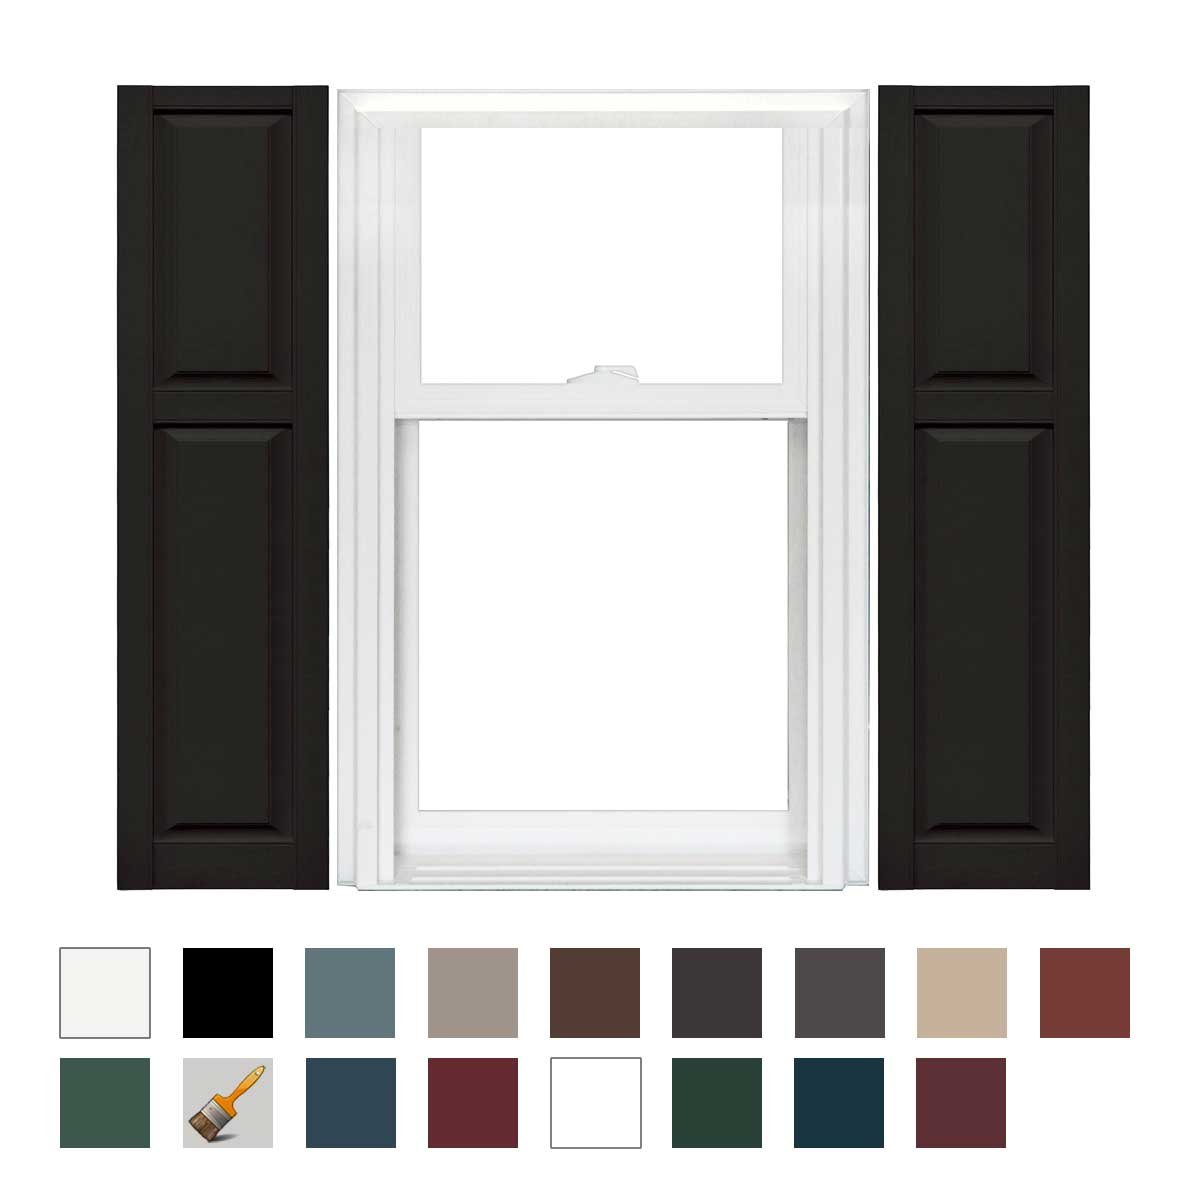 Mid America Williamsburg Vinyl Cottage Style Standard Shutter 67'' Long - 1 Pair (14-3/4in. 002 Black) by Mid America